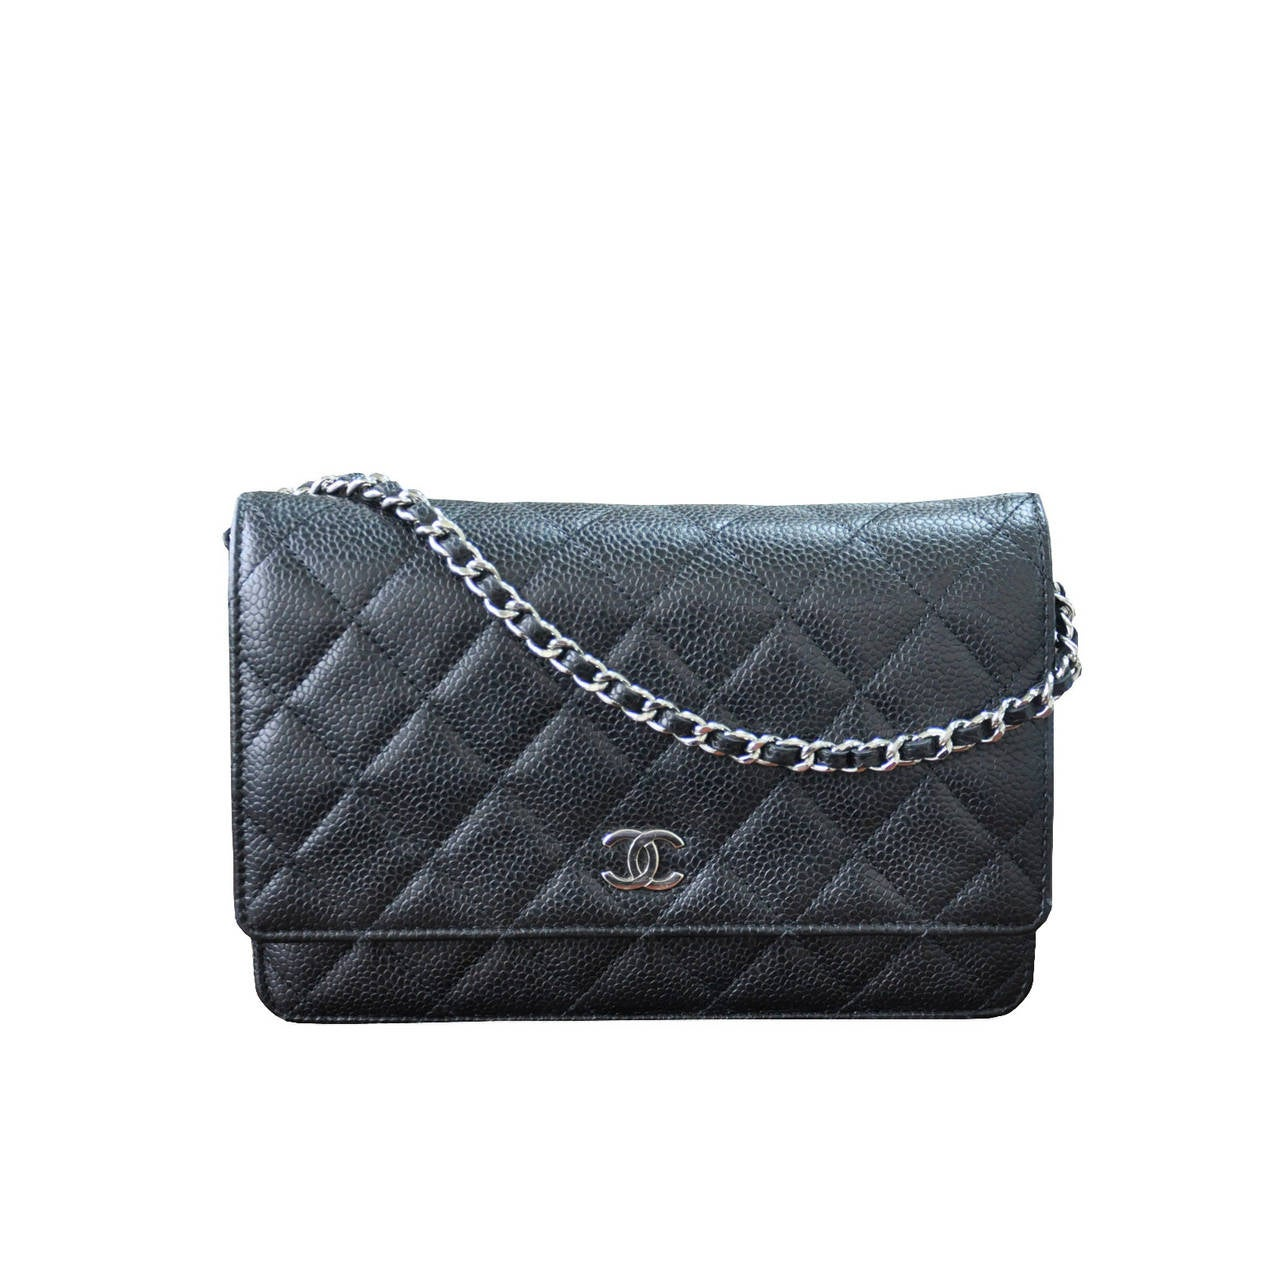 Chanel Woc Wallet On Chain Black Caviar Leather Crossbody Handbag For